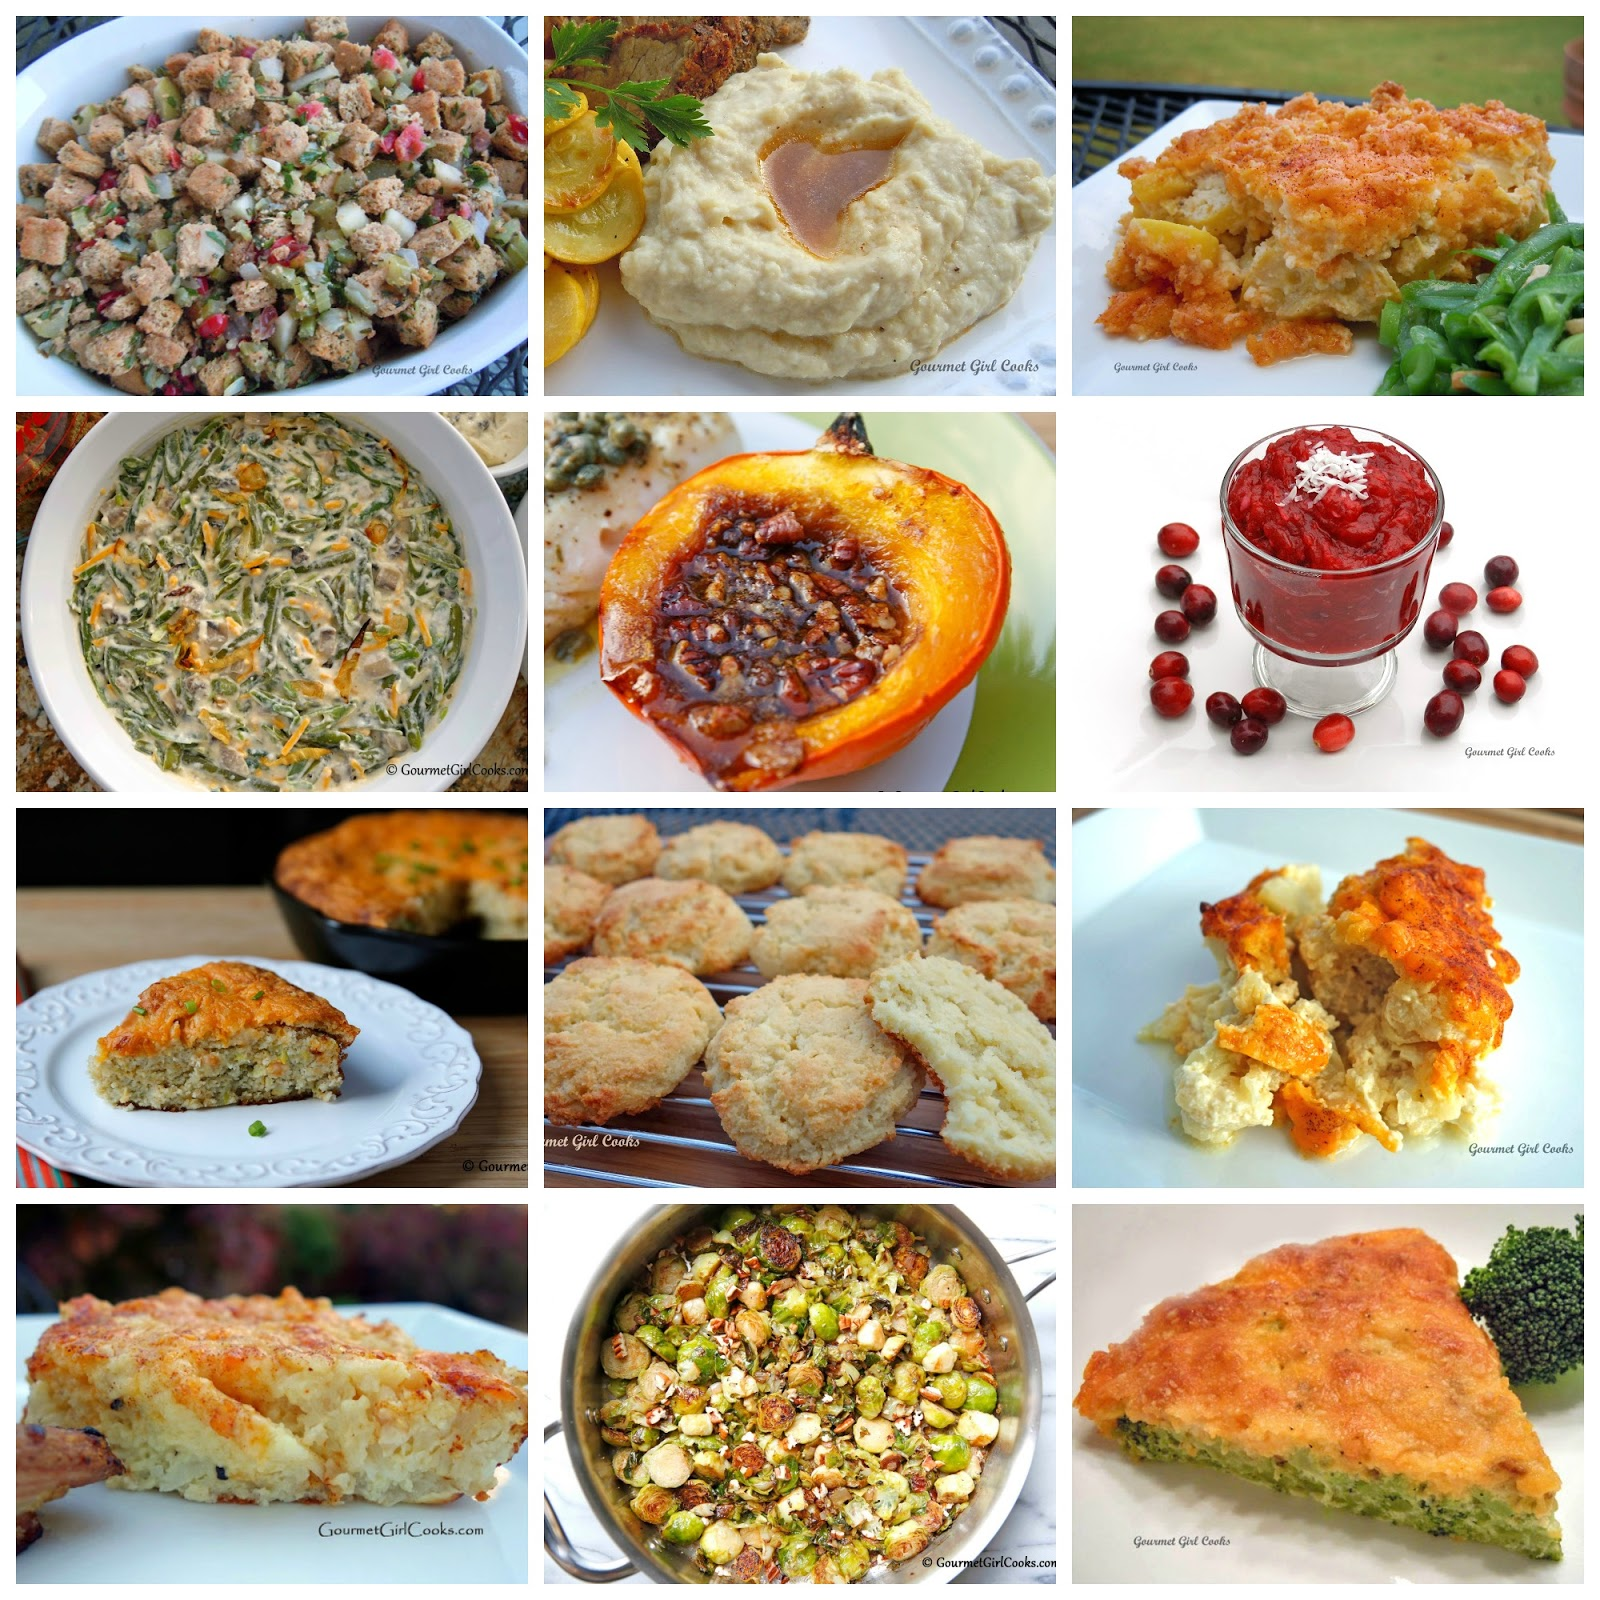 Sode Dishes: Gourmet Girl Cooks: 12 Thanksgiving Side Dish Recipes